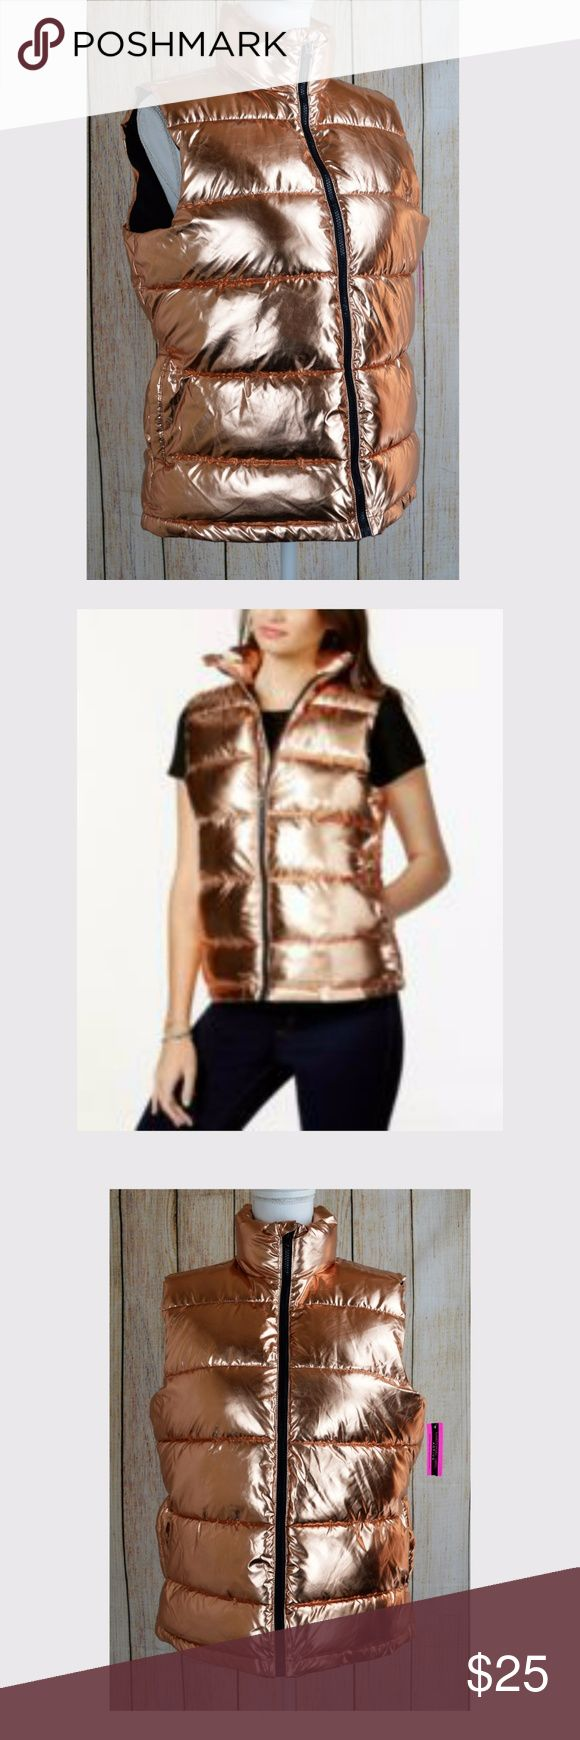 "Active Juniors' Puffer Vest Jacket Coat Rose Gold Please Verify Measurements Up For Sale New with tags Material Girl Active Juniors' Puffer Vest  Jacket Coat Top Rose Gold X-Small XS $59.50  Measurements are measured across: Armpit to armpit 19.5"" Shoulder 14"" Hem 20"" Length 23""  BRAND: Material Girl Active  SIZE:  Small S CONDITION: New with tags  COLOR: Rose Gold STYLE:  Puffer Vest  MATERIAL: 100% Polyester  MWC02-01 Material Girl Active Jackets & Coats Vests"